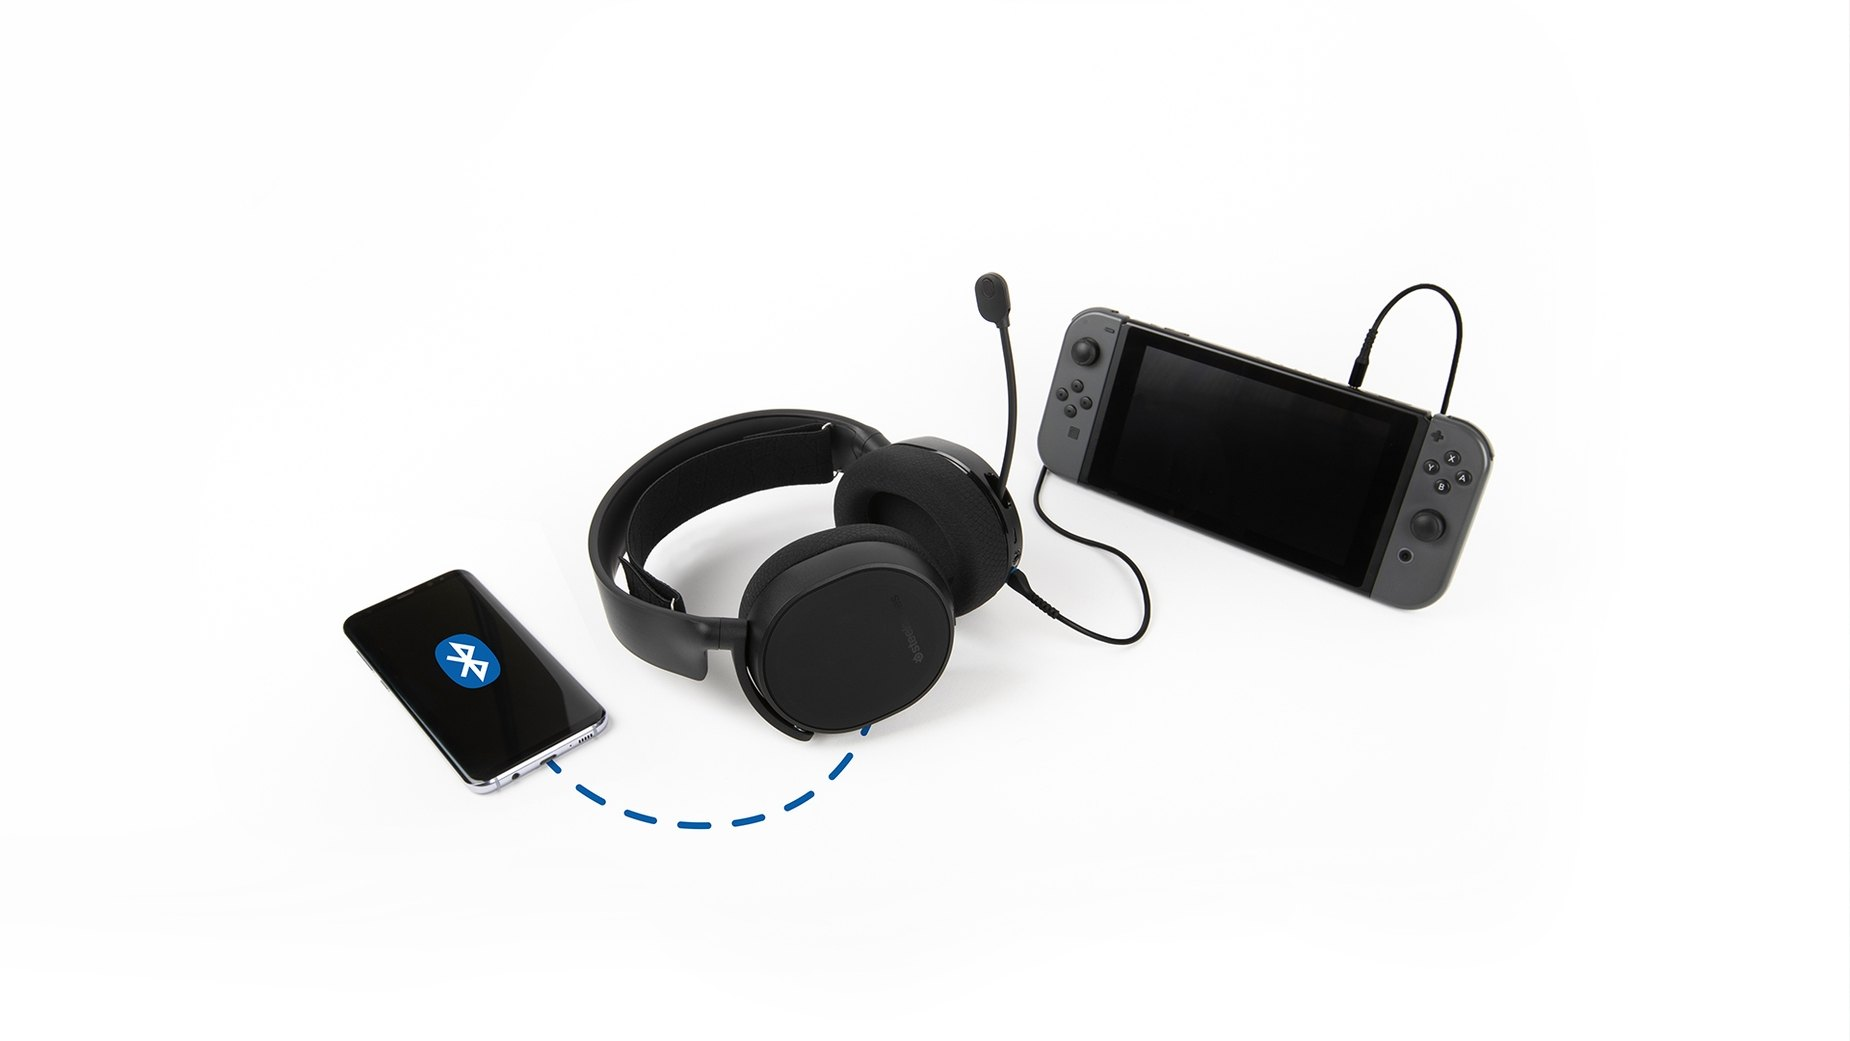 The Arctis 3 Bluetooth wireless gaming headset surrounded by Nintendo Switch game console and mobile device, connected wired to Nintendo Switch while simultaneously connected via Bluetooth to mobile device